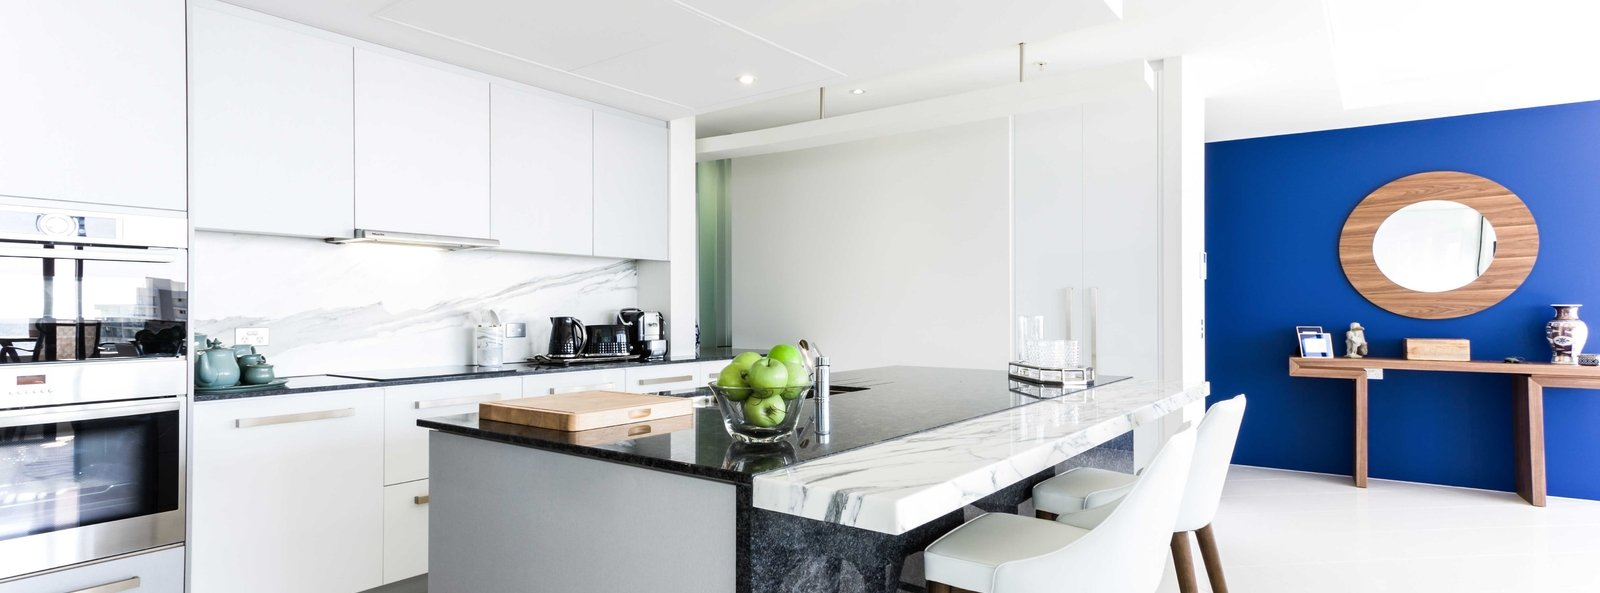 Simple kitchen updates that can add value to your home